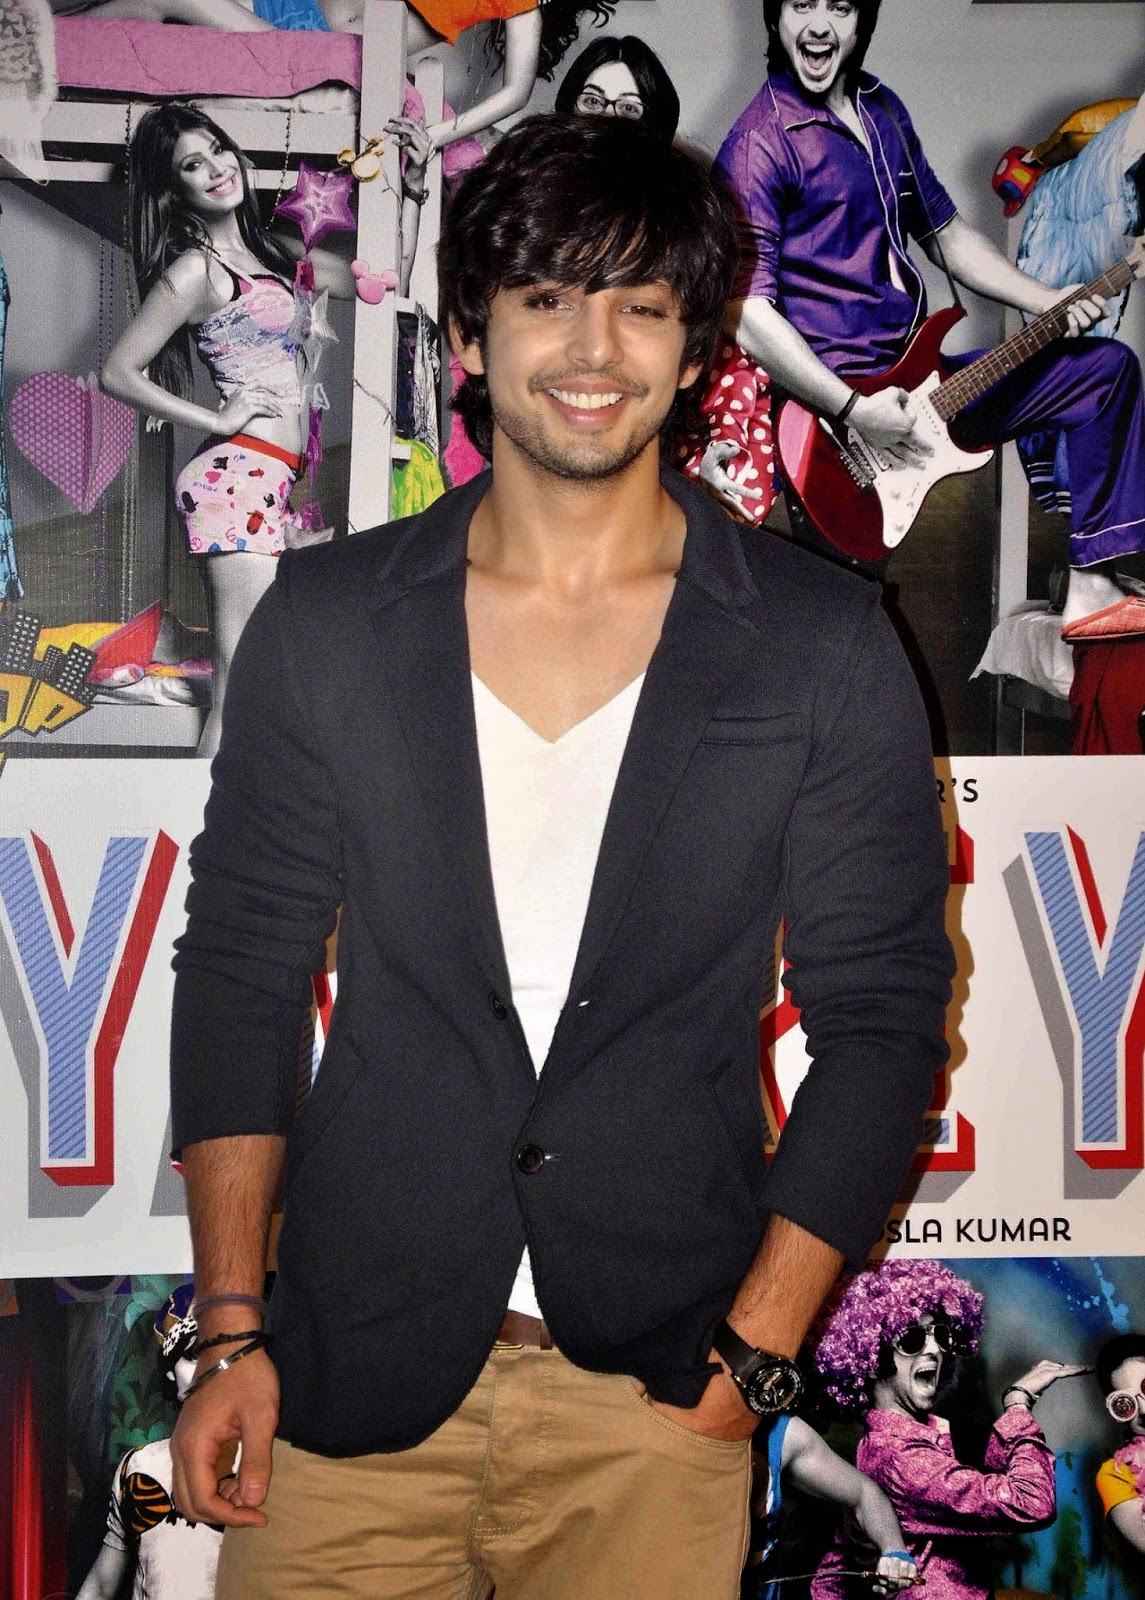 Hd wallpaper yaariyan - Himanshu Kohli Film Yarian Actor